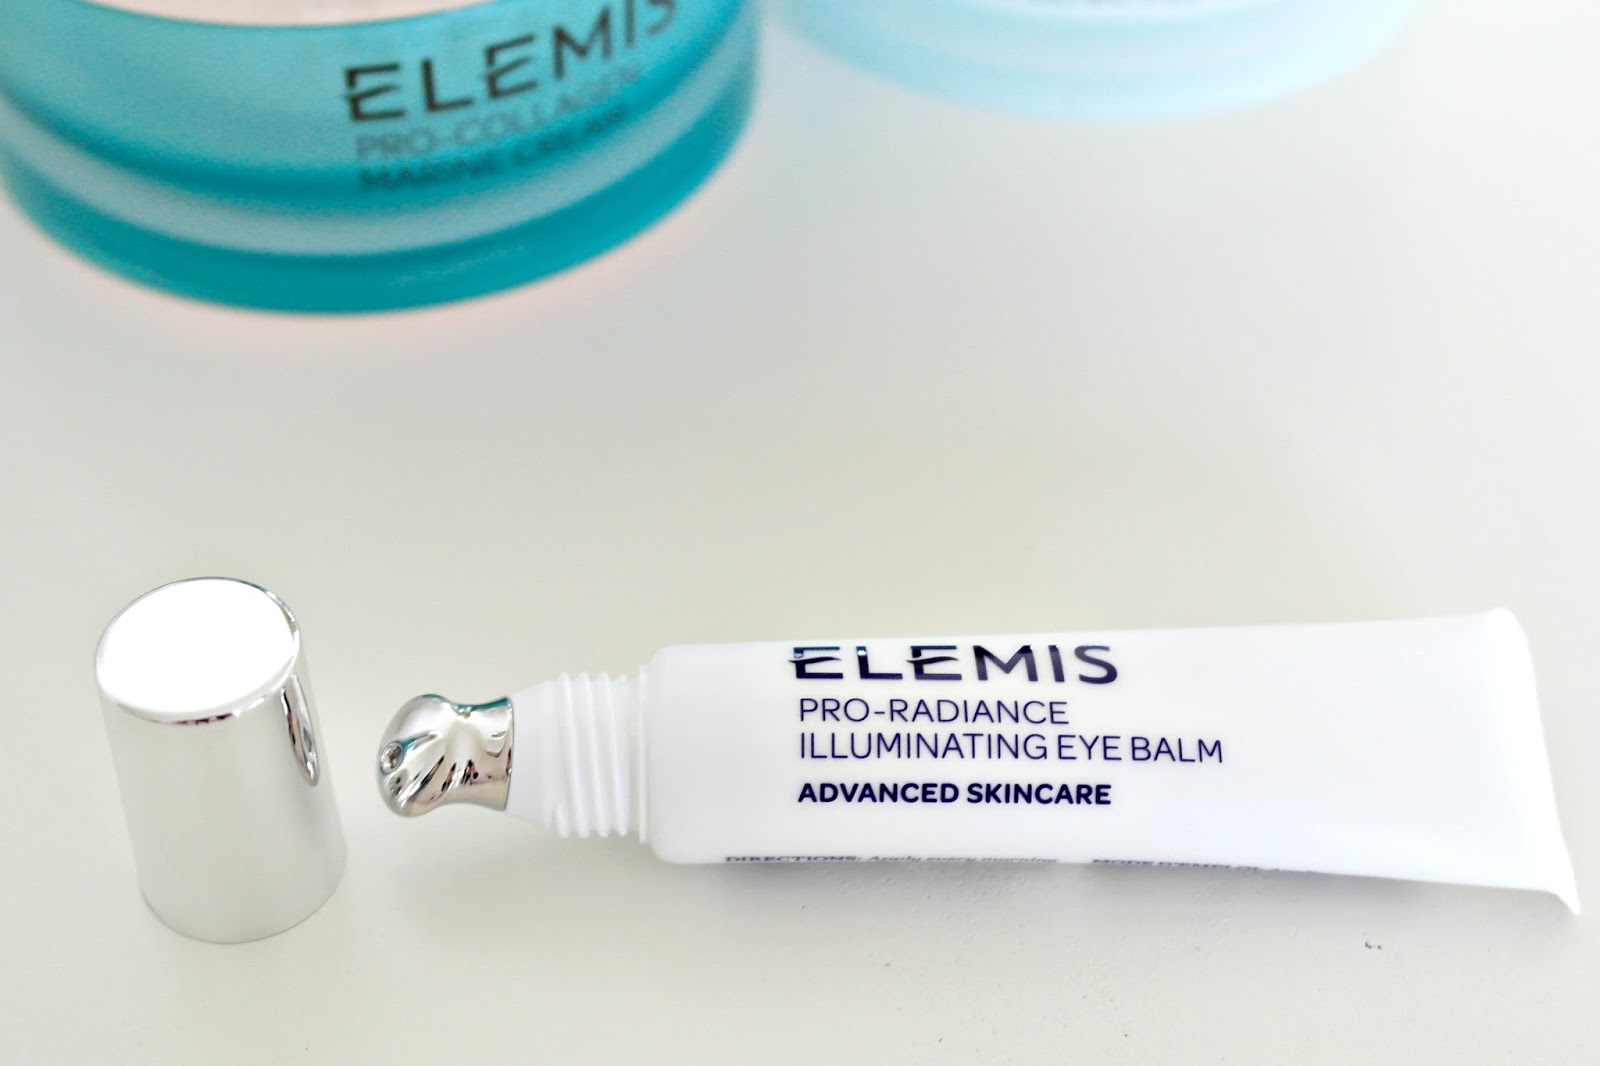 Elemis Pro-Radiance Illuminating Eye Balm, beauty blog